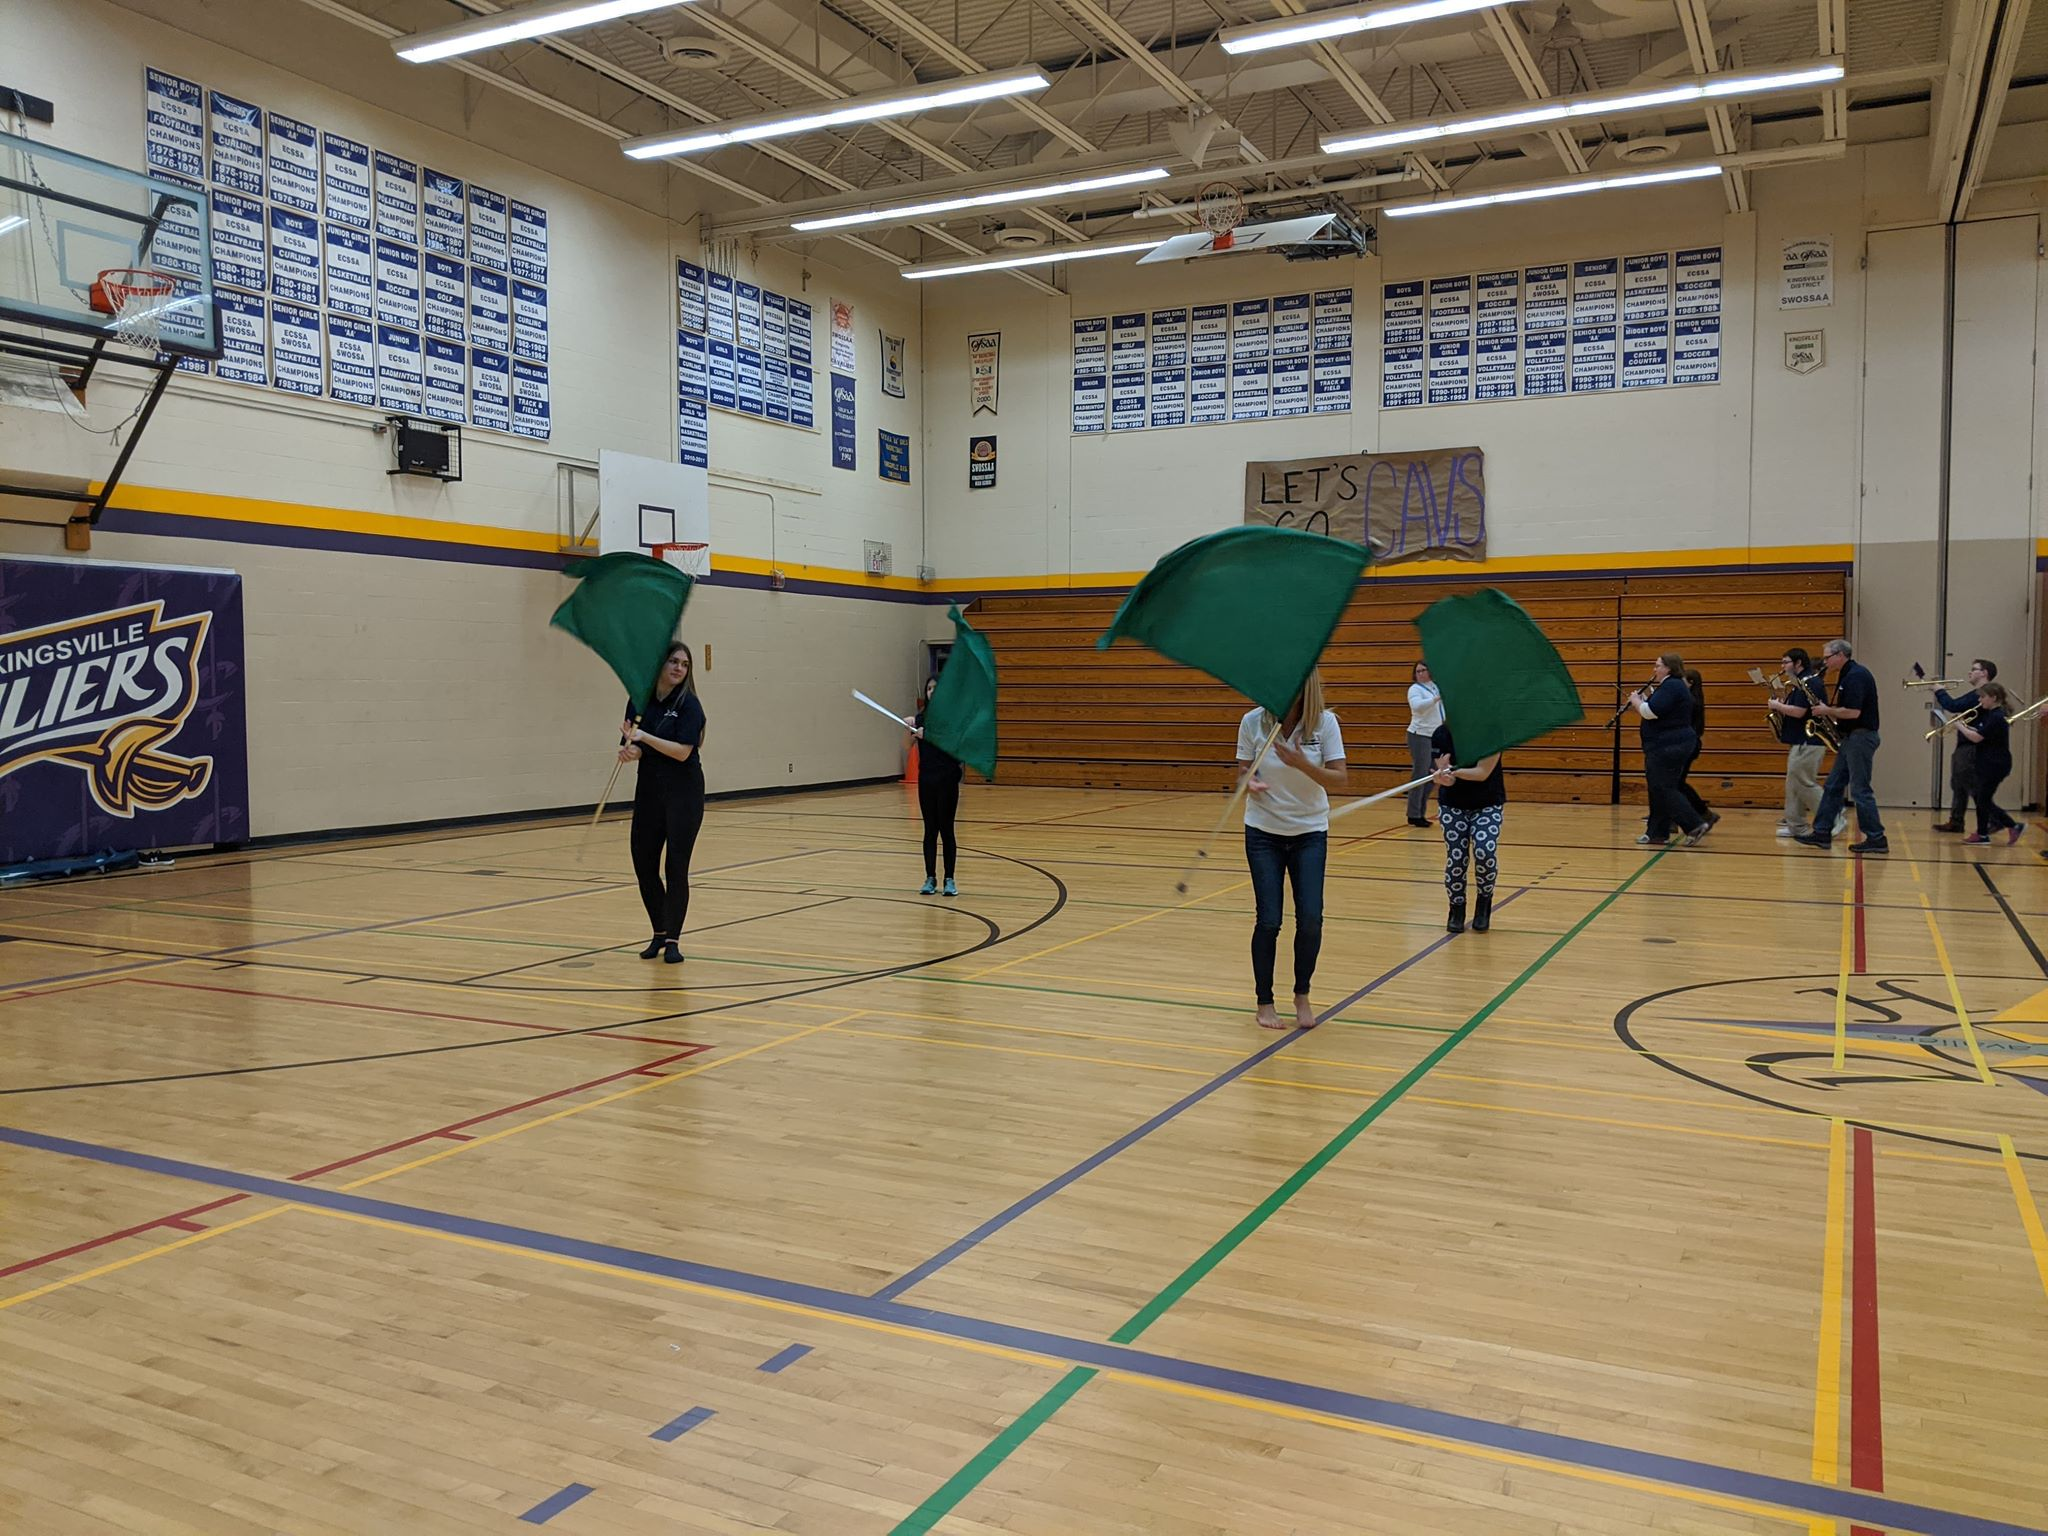 members of the colour guard practicing in a gymnasium with green flags